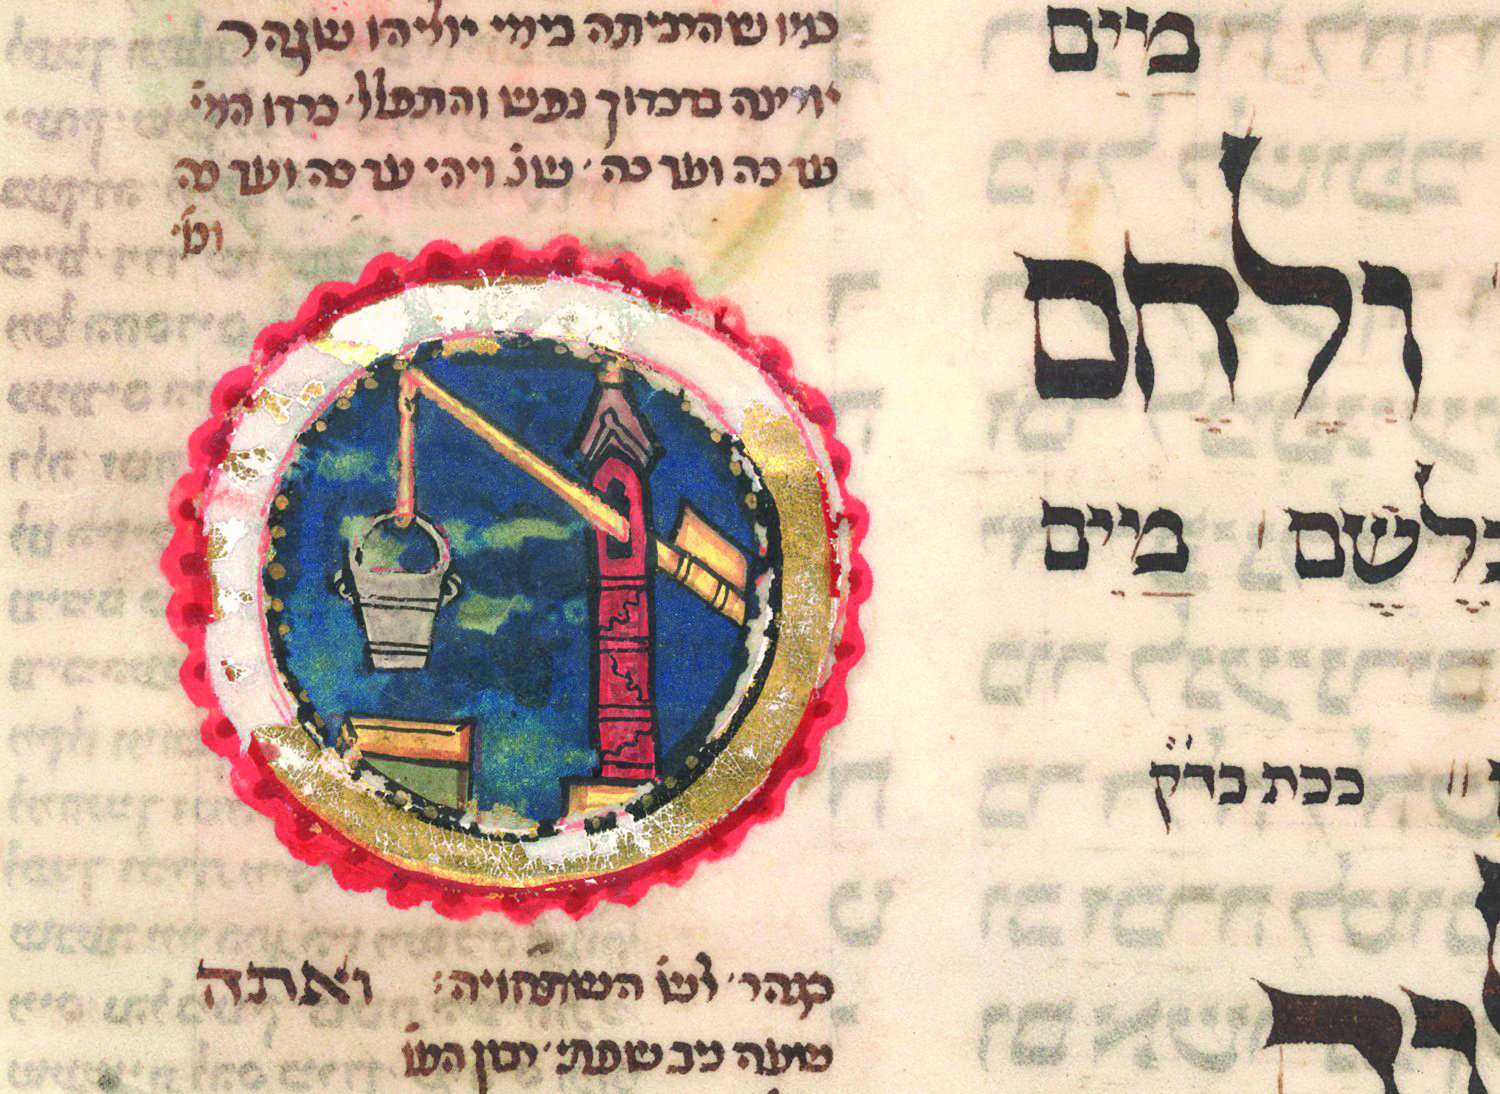 D'li the water bucket (AKA Aquarius), the astrological sign of the Jewish people, in a 1322 German prayerbook.